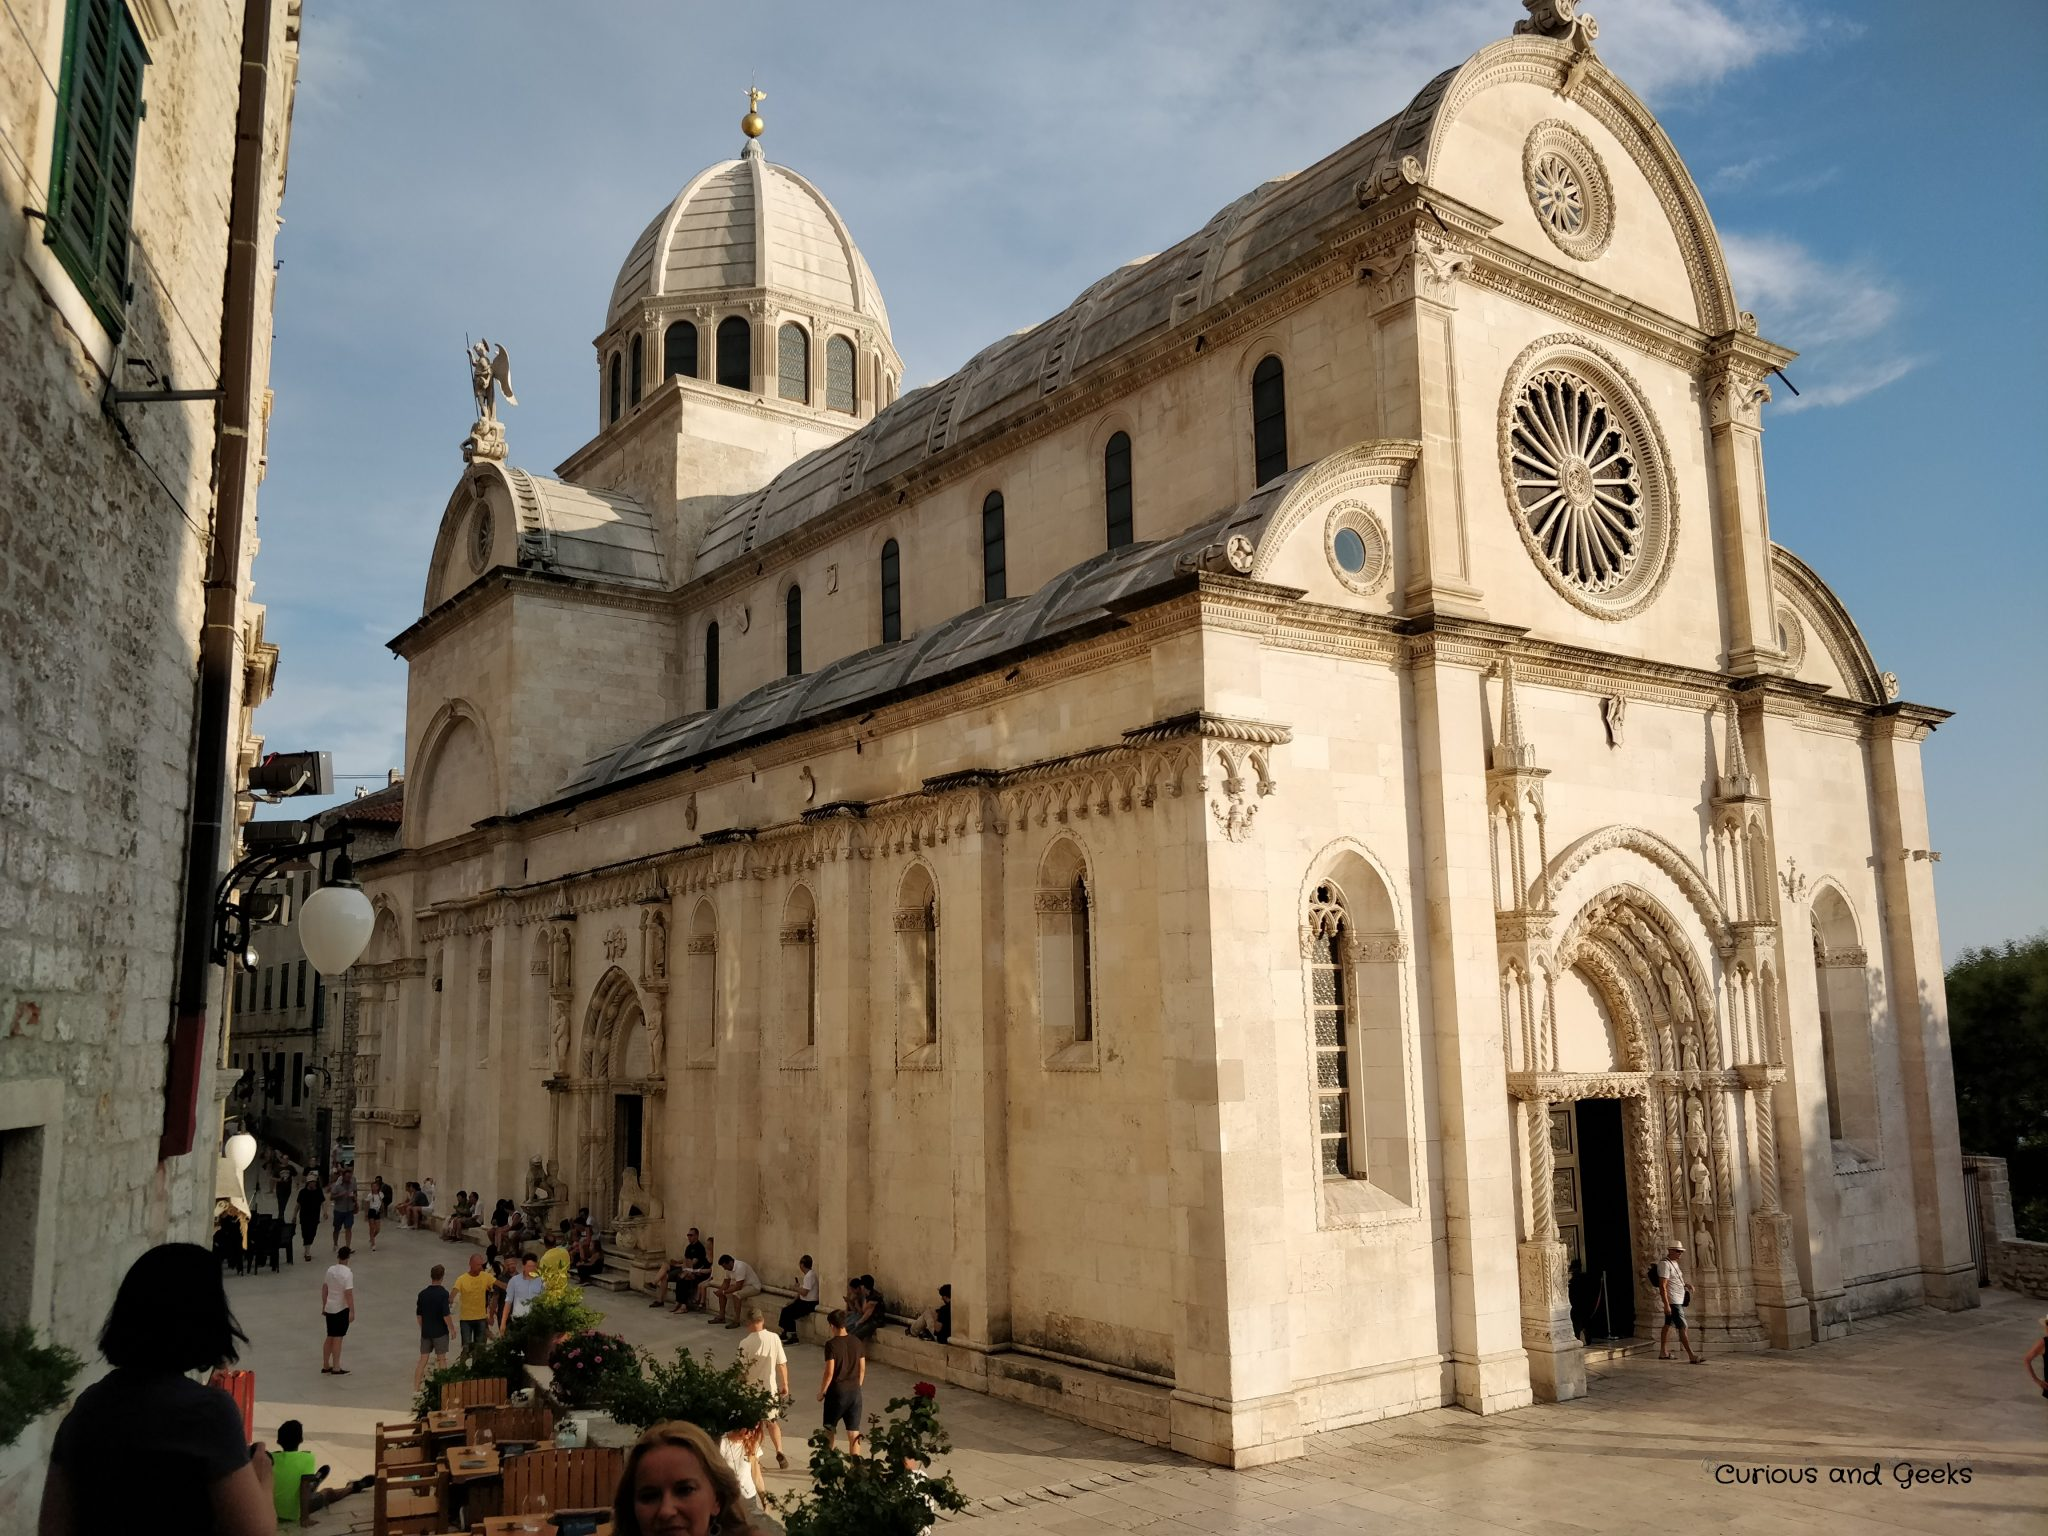 cathedral of saint james - Road trip in Croatia with kids